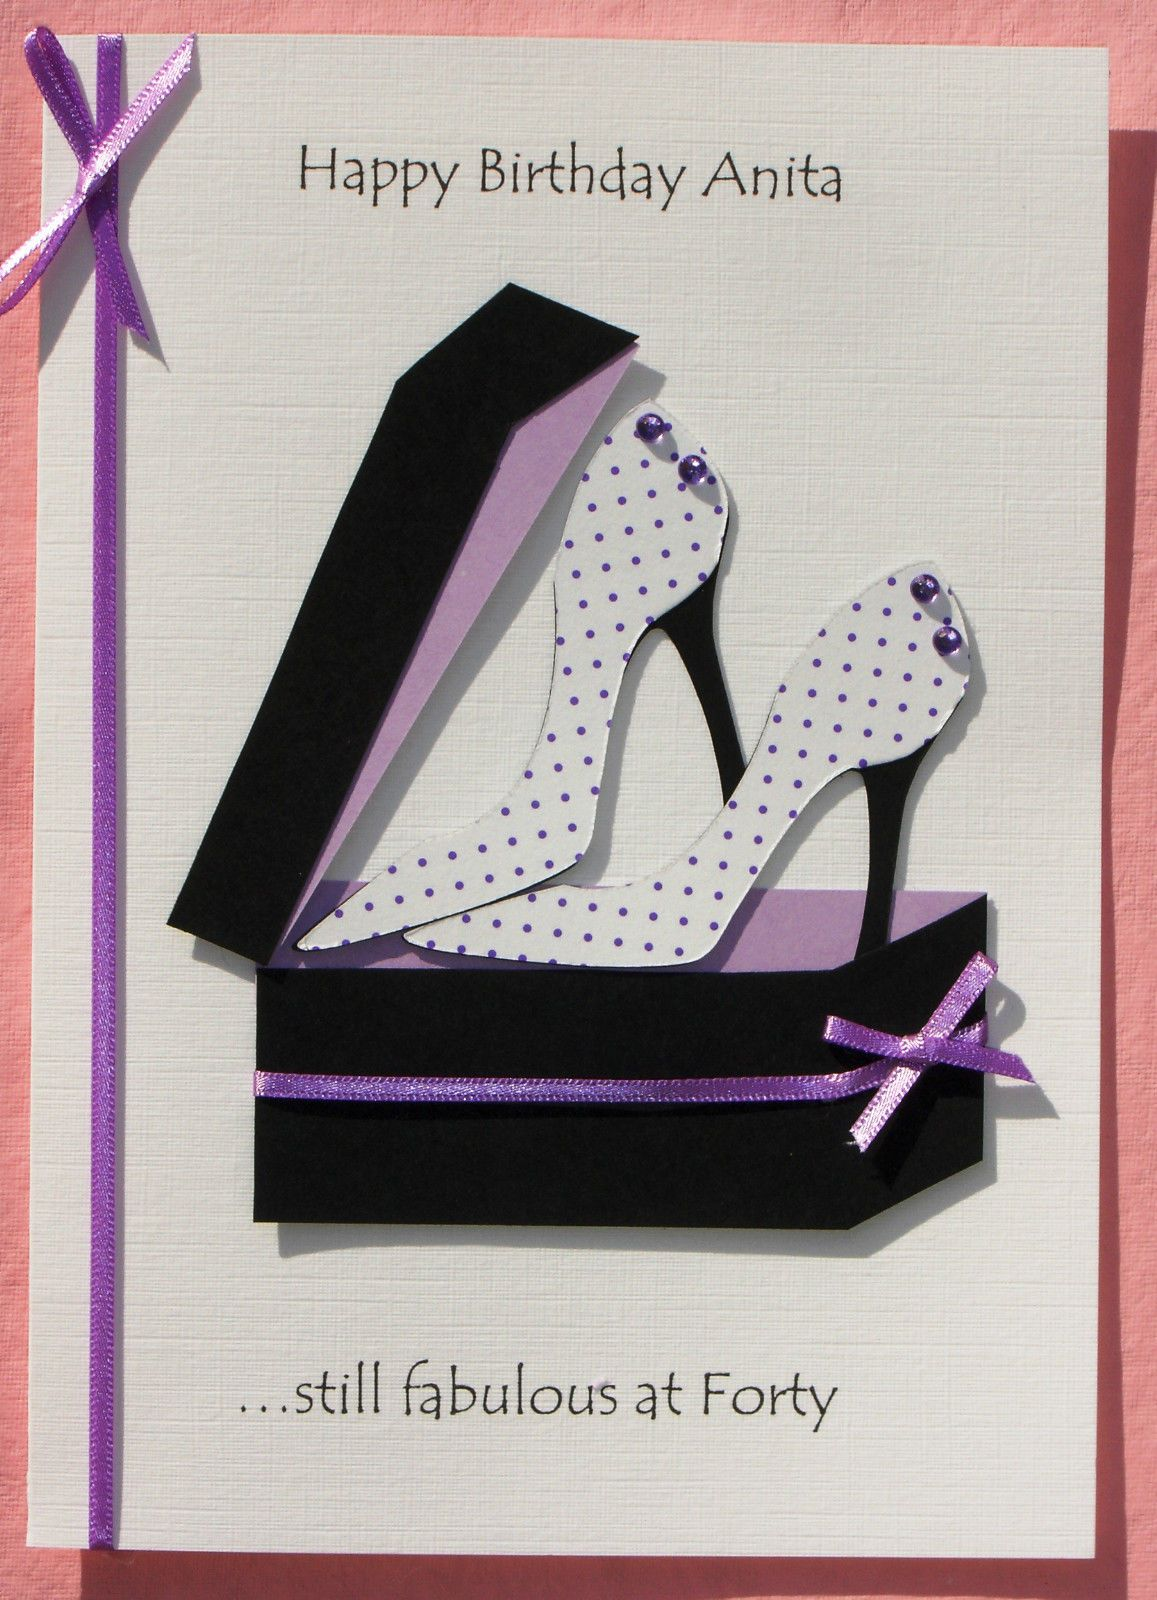 The Card Is Completed With A Toning Ribbon And Bow In The Example Photographed The Card R Sister Birthday Card Birthday Cards For Women Birthday Cards For Men